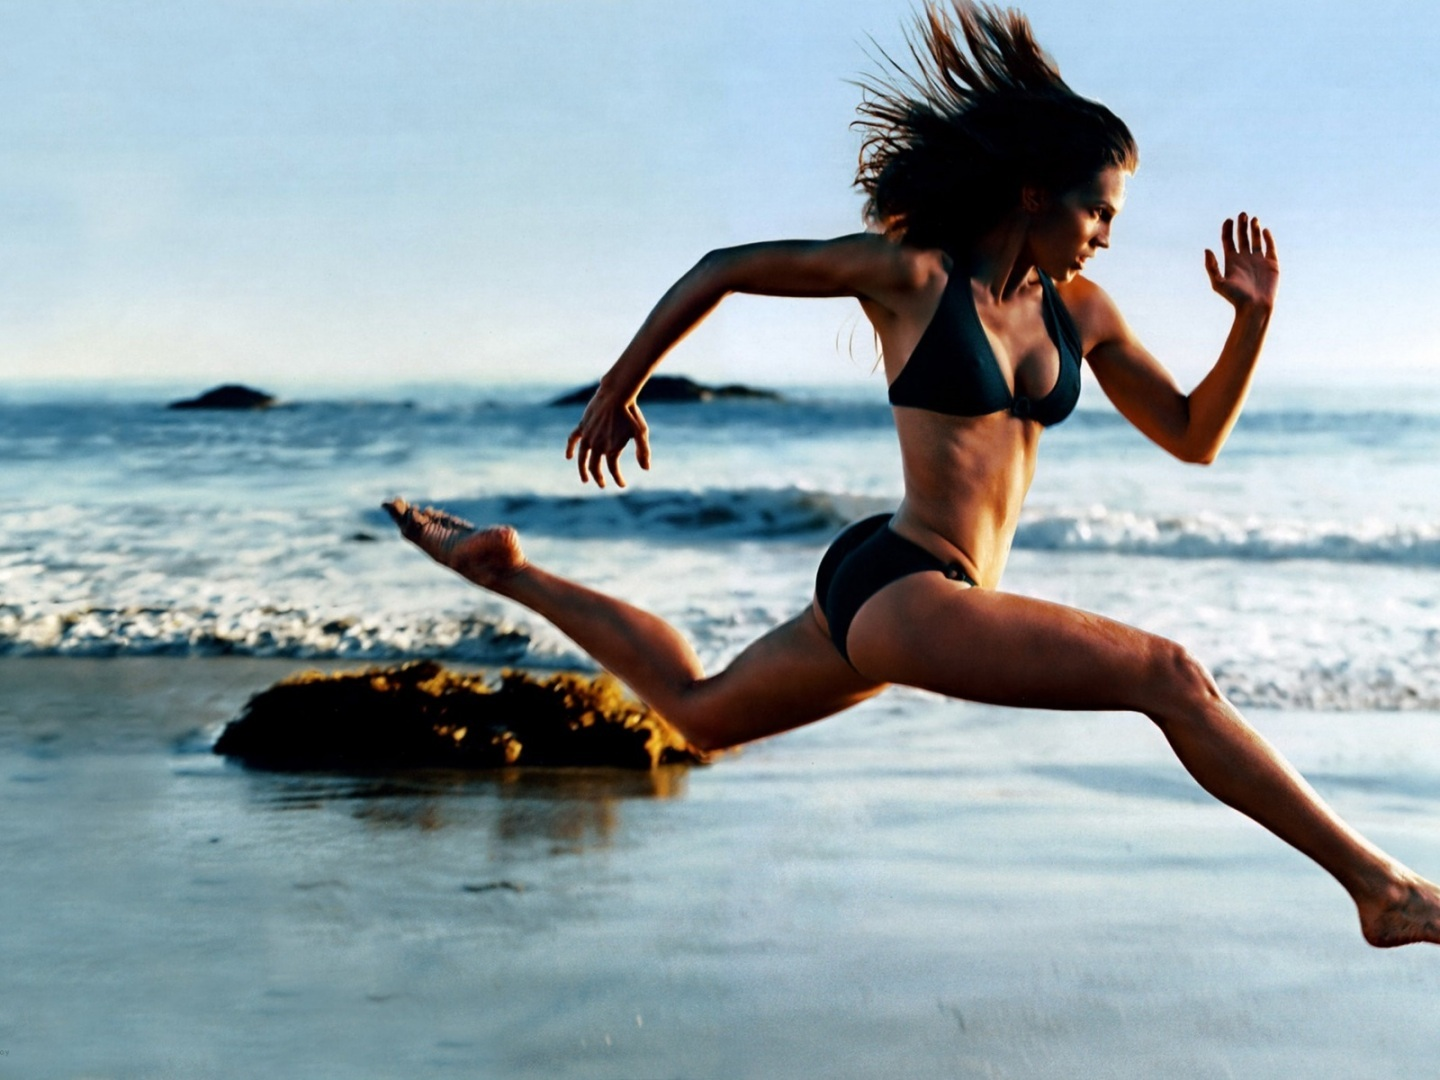 girl-running-on-the-beach-brash-fitness-1066744552